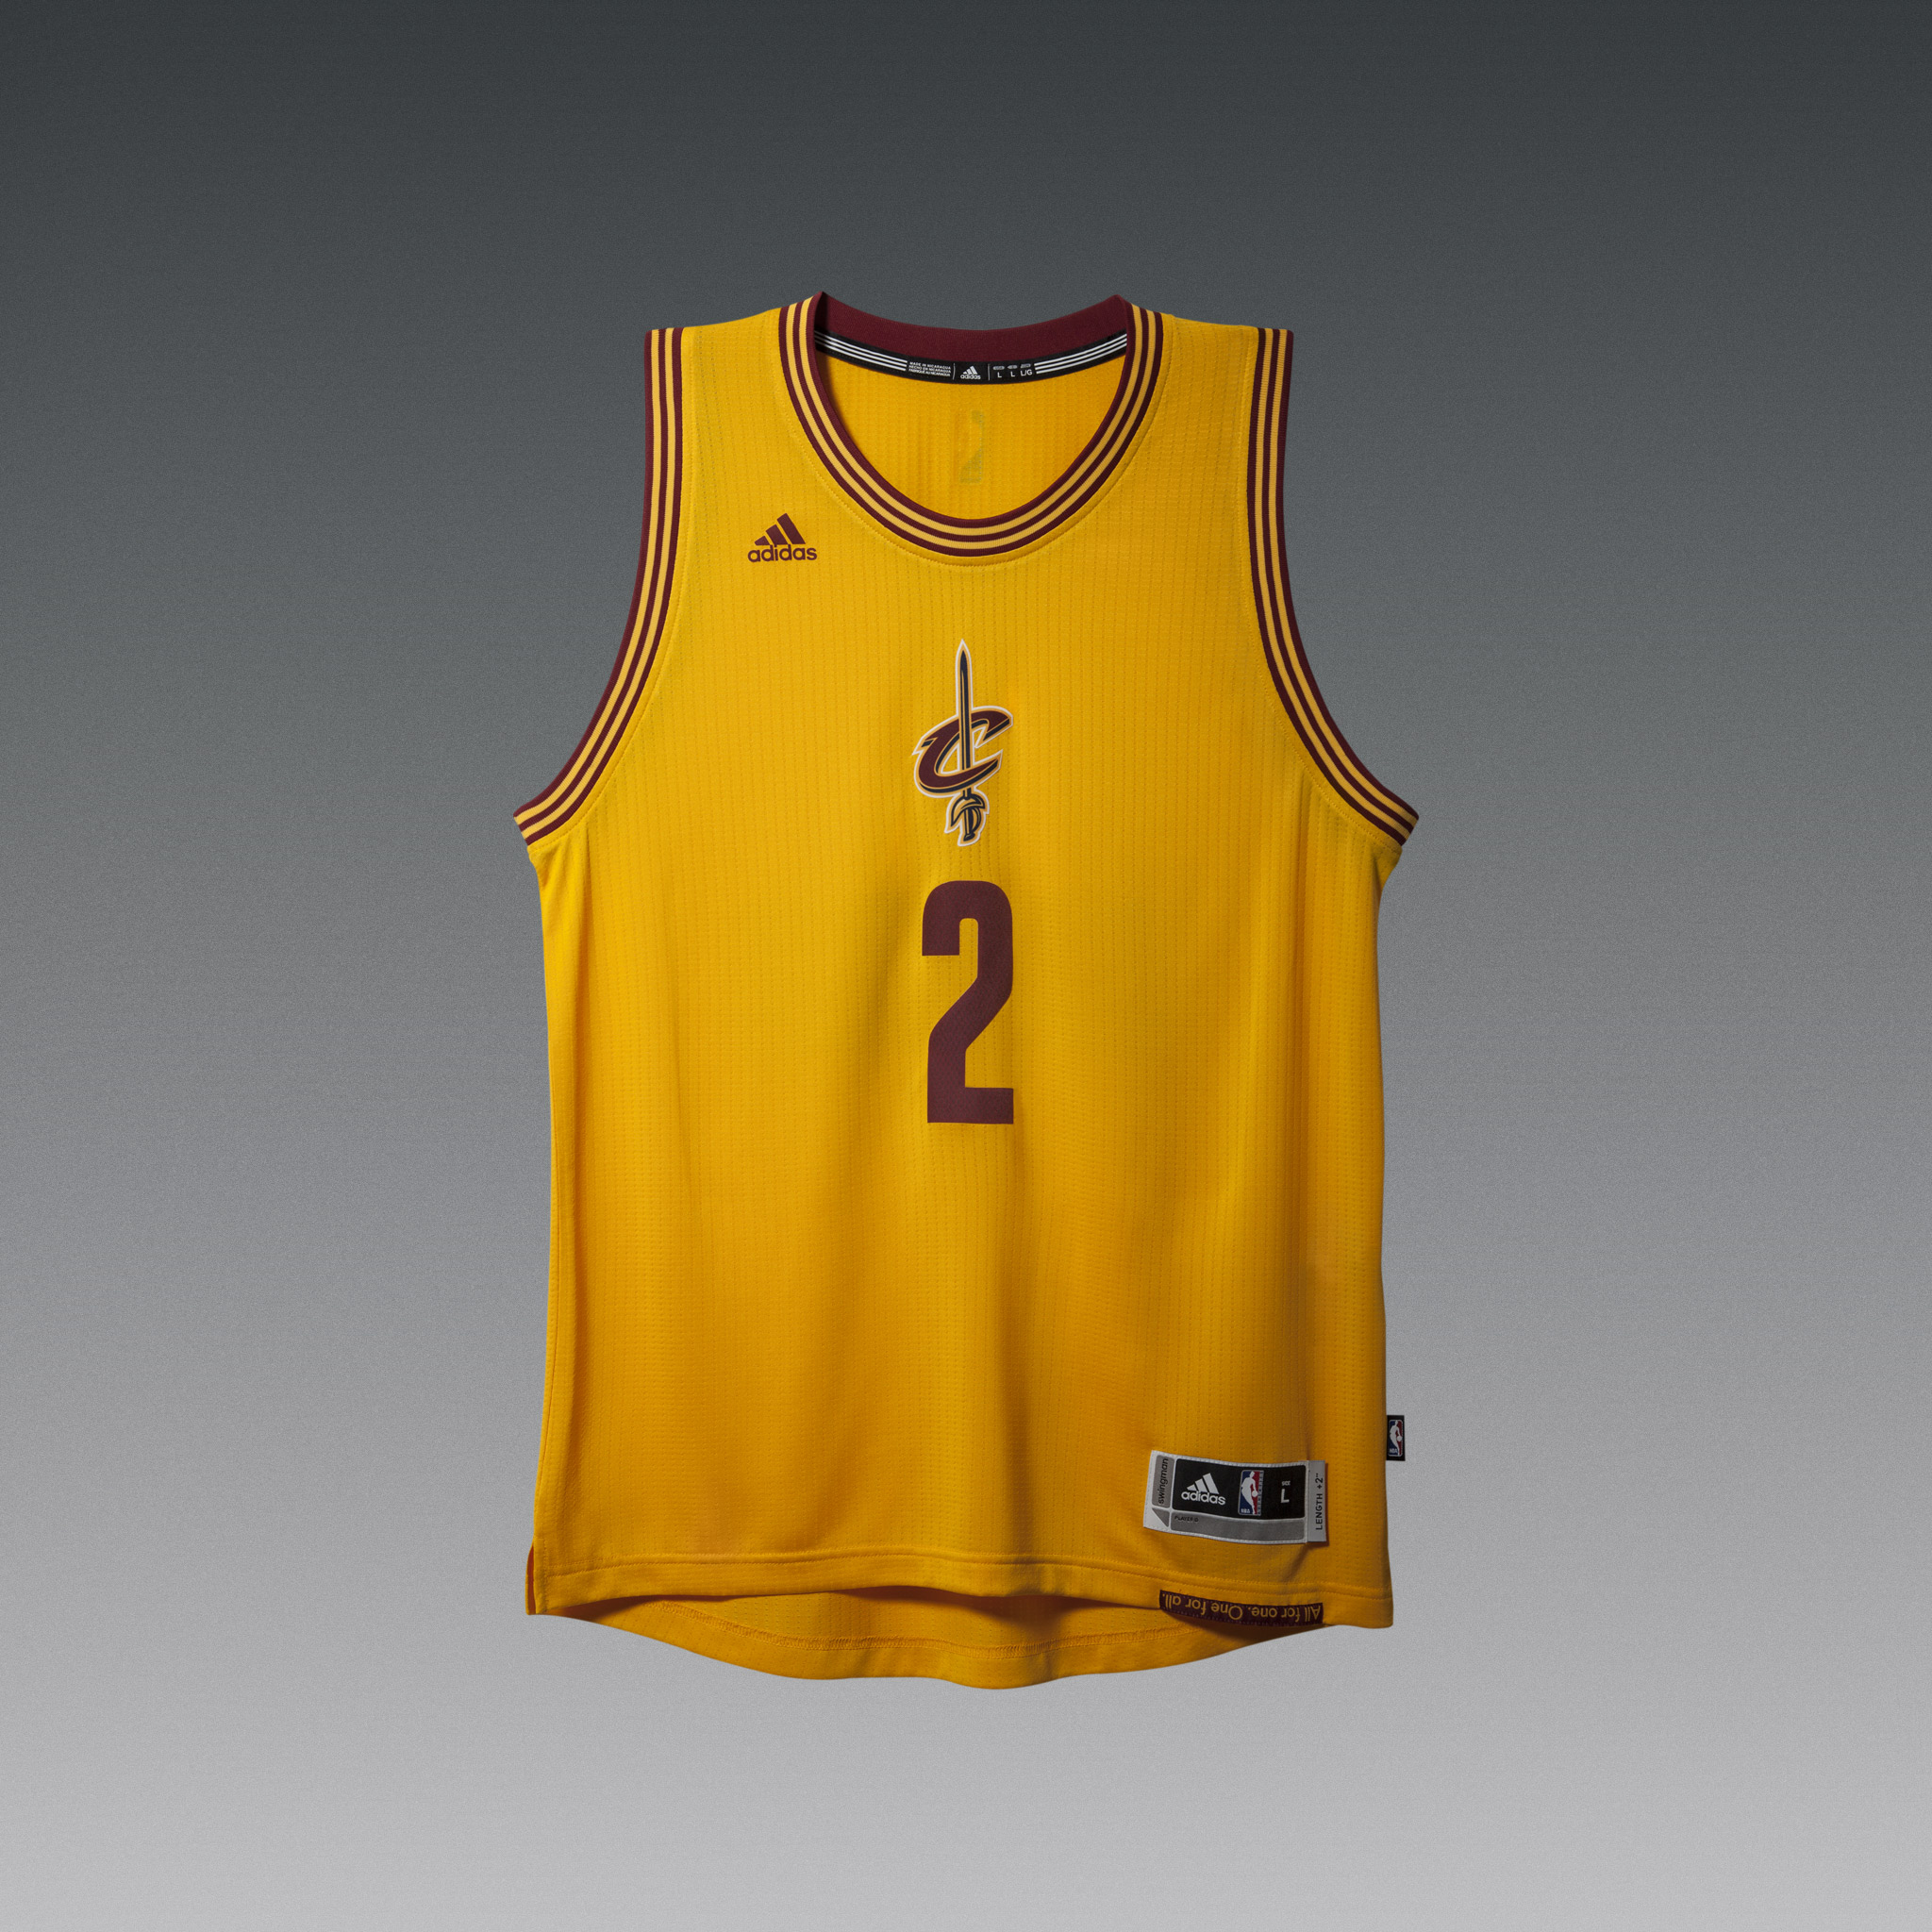 adidas-NBA Christmas Day, Cleveland Cavaliers